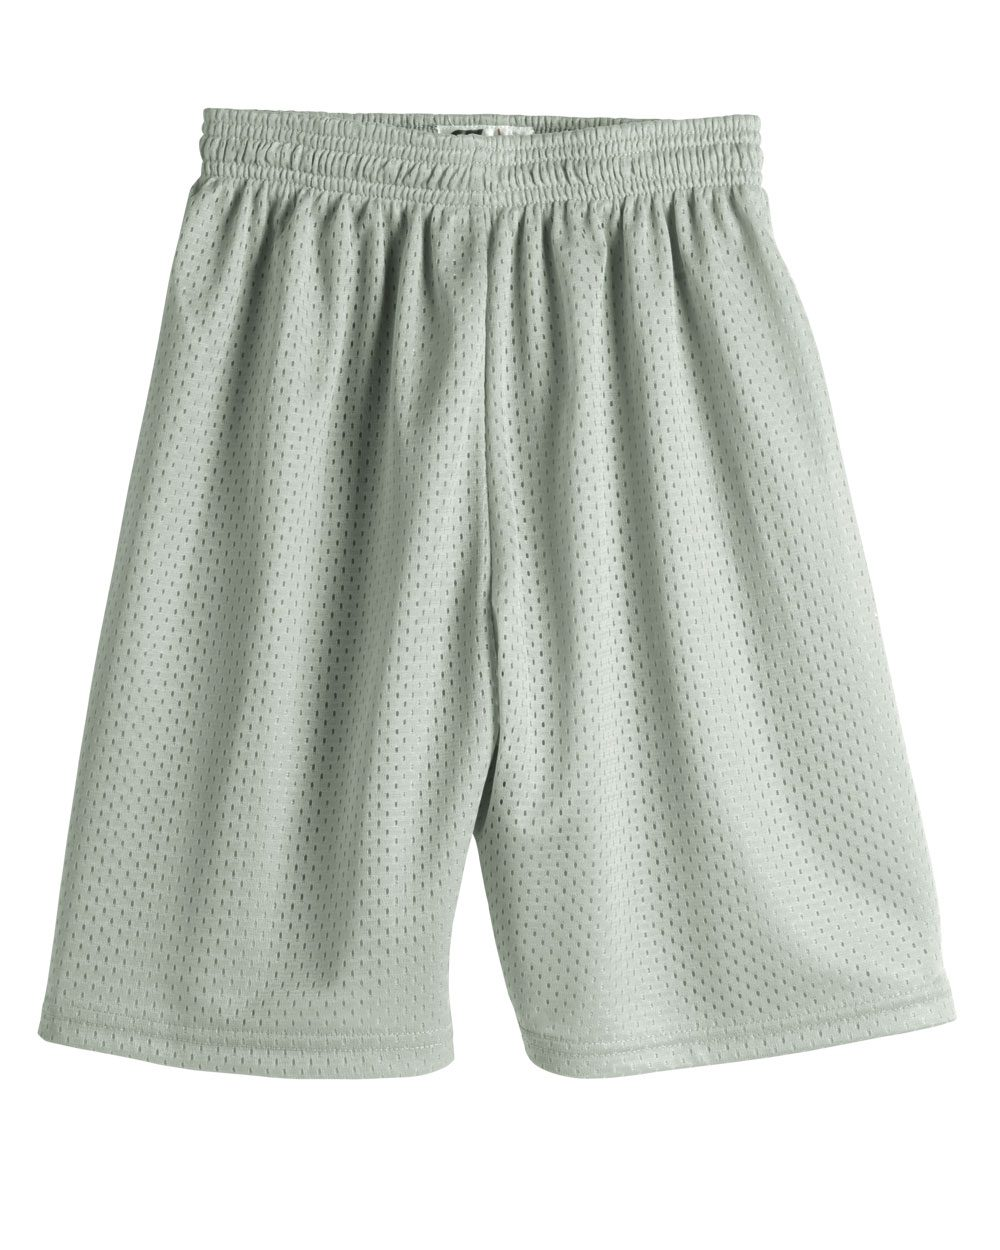 C2 Sport Mesh Youth Shorts - 5209